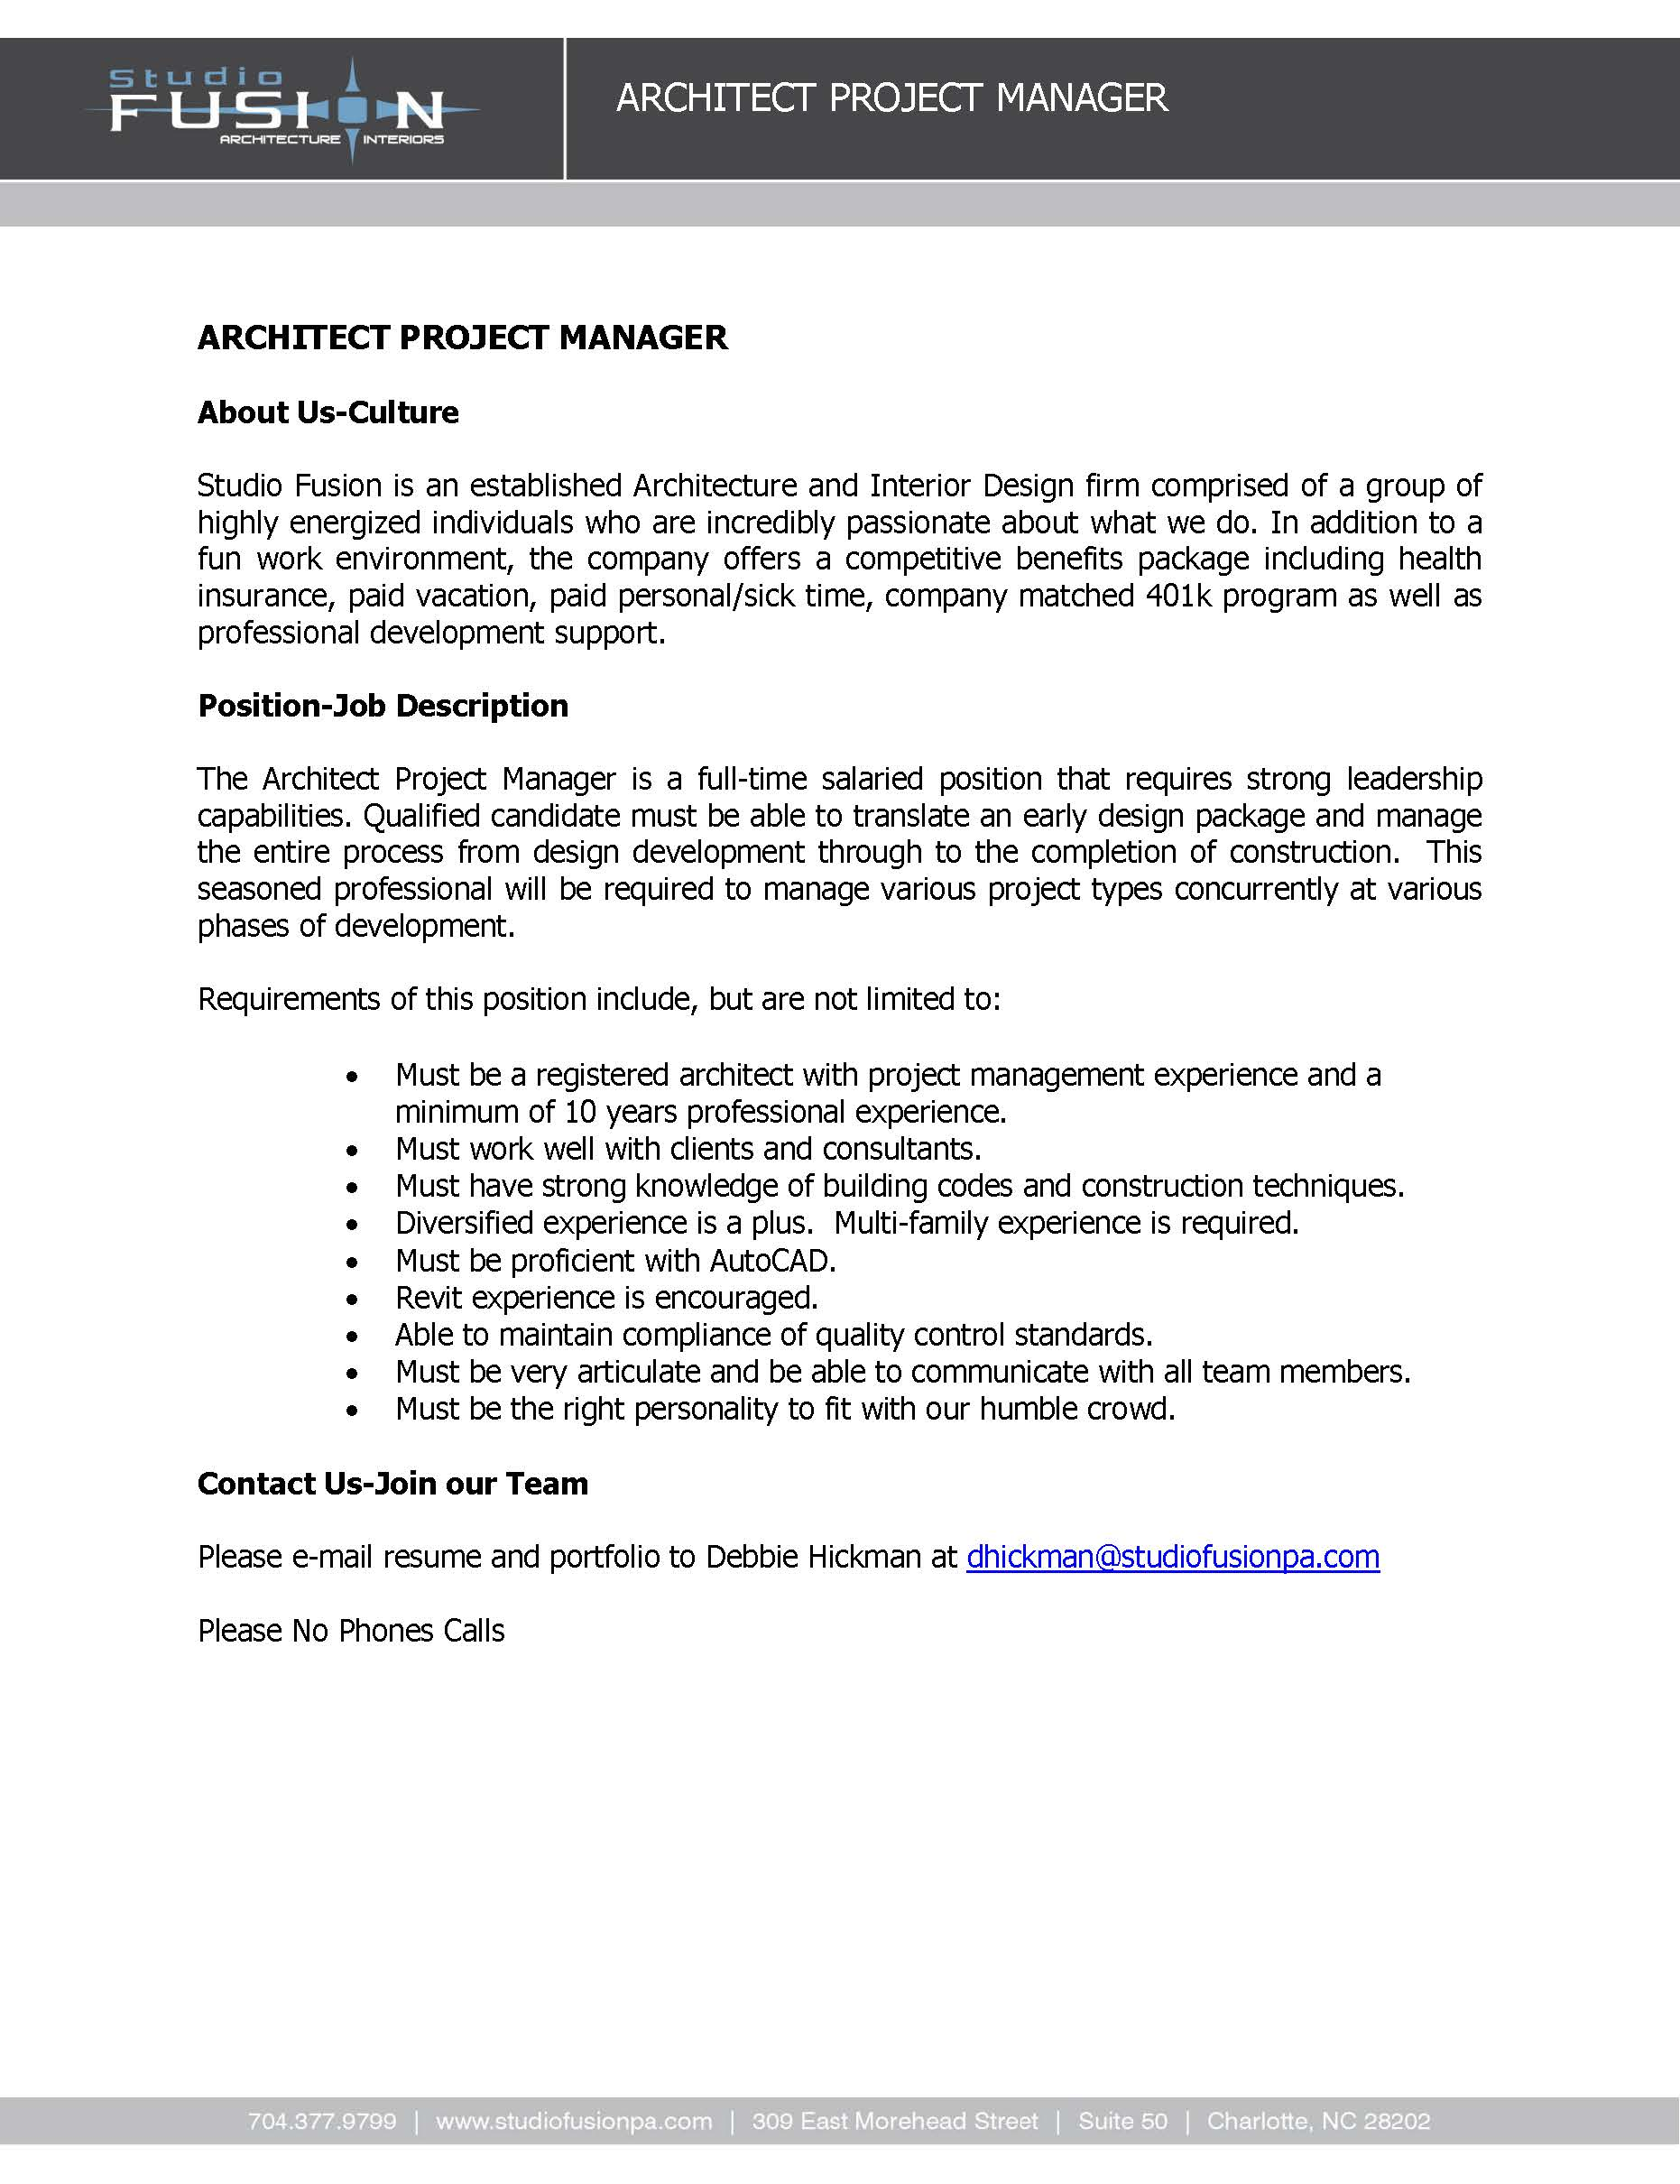 job description architect project manager - Architectural Project Manager Resume